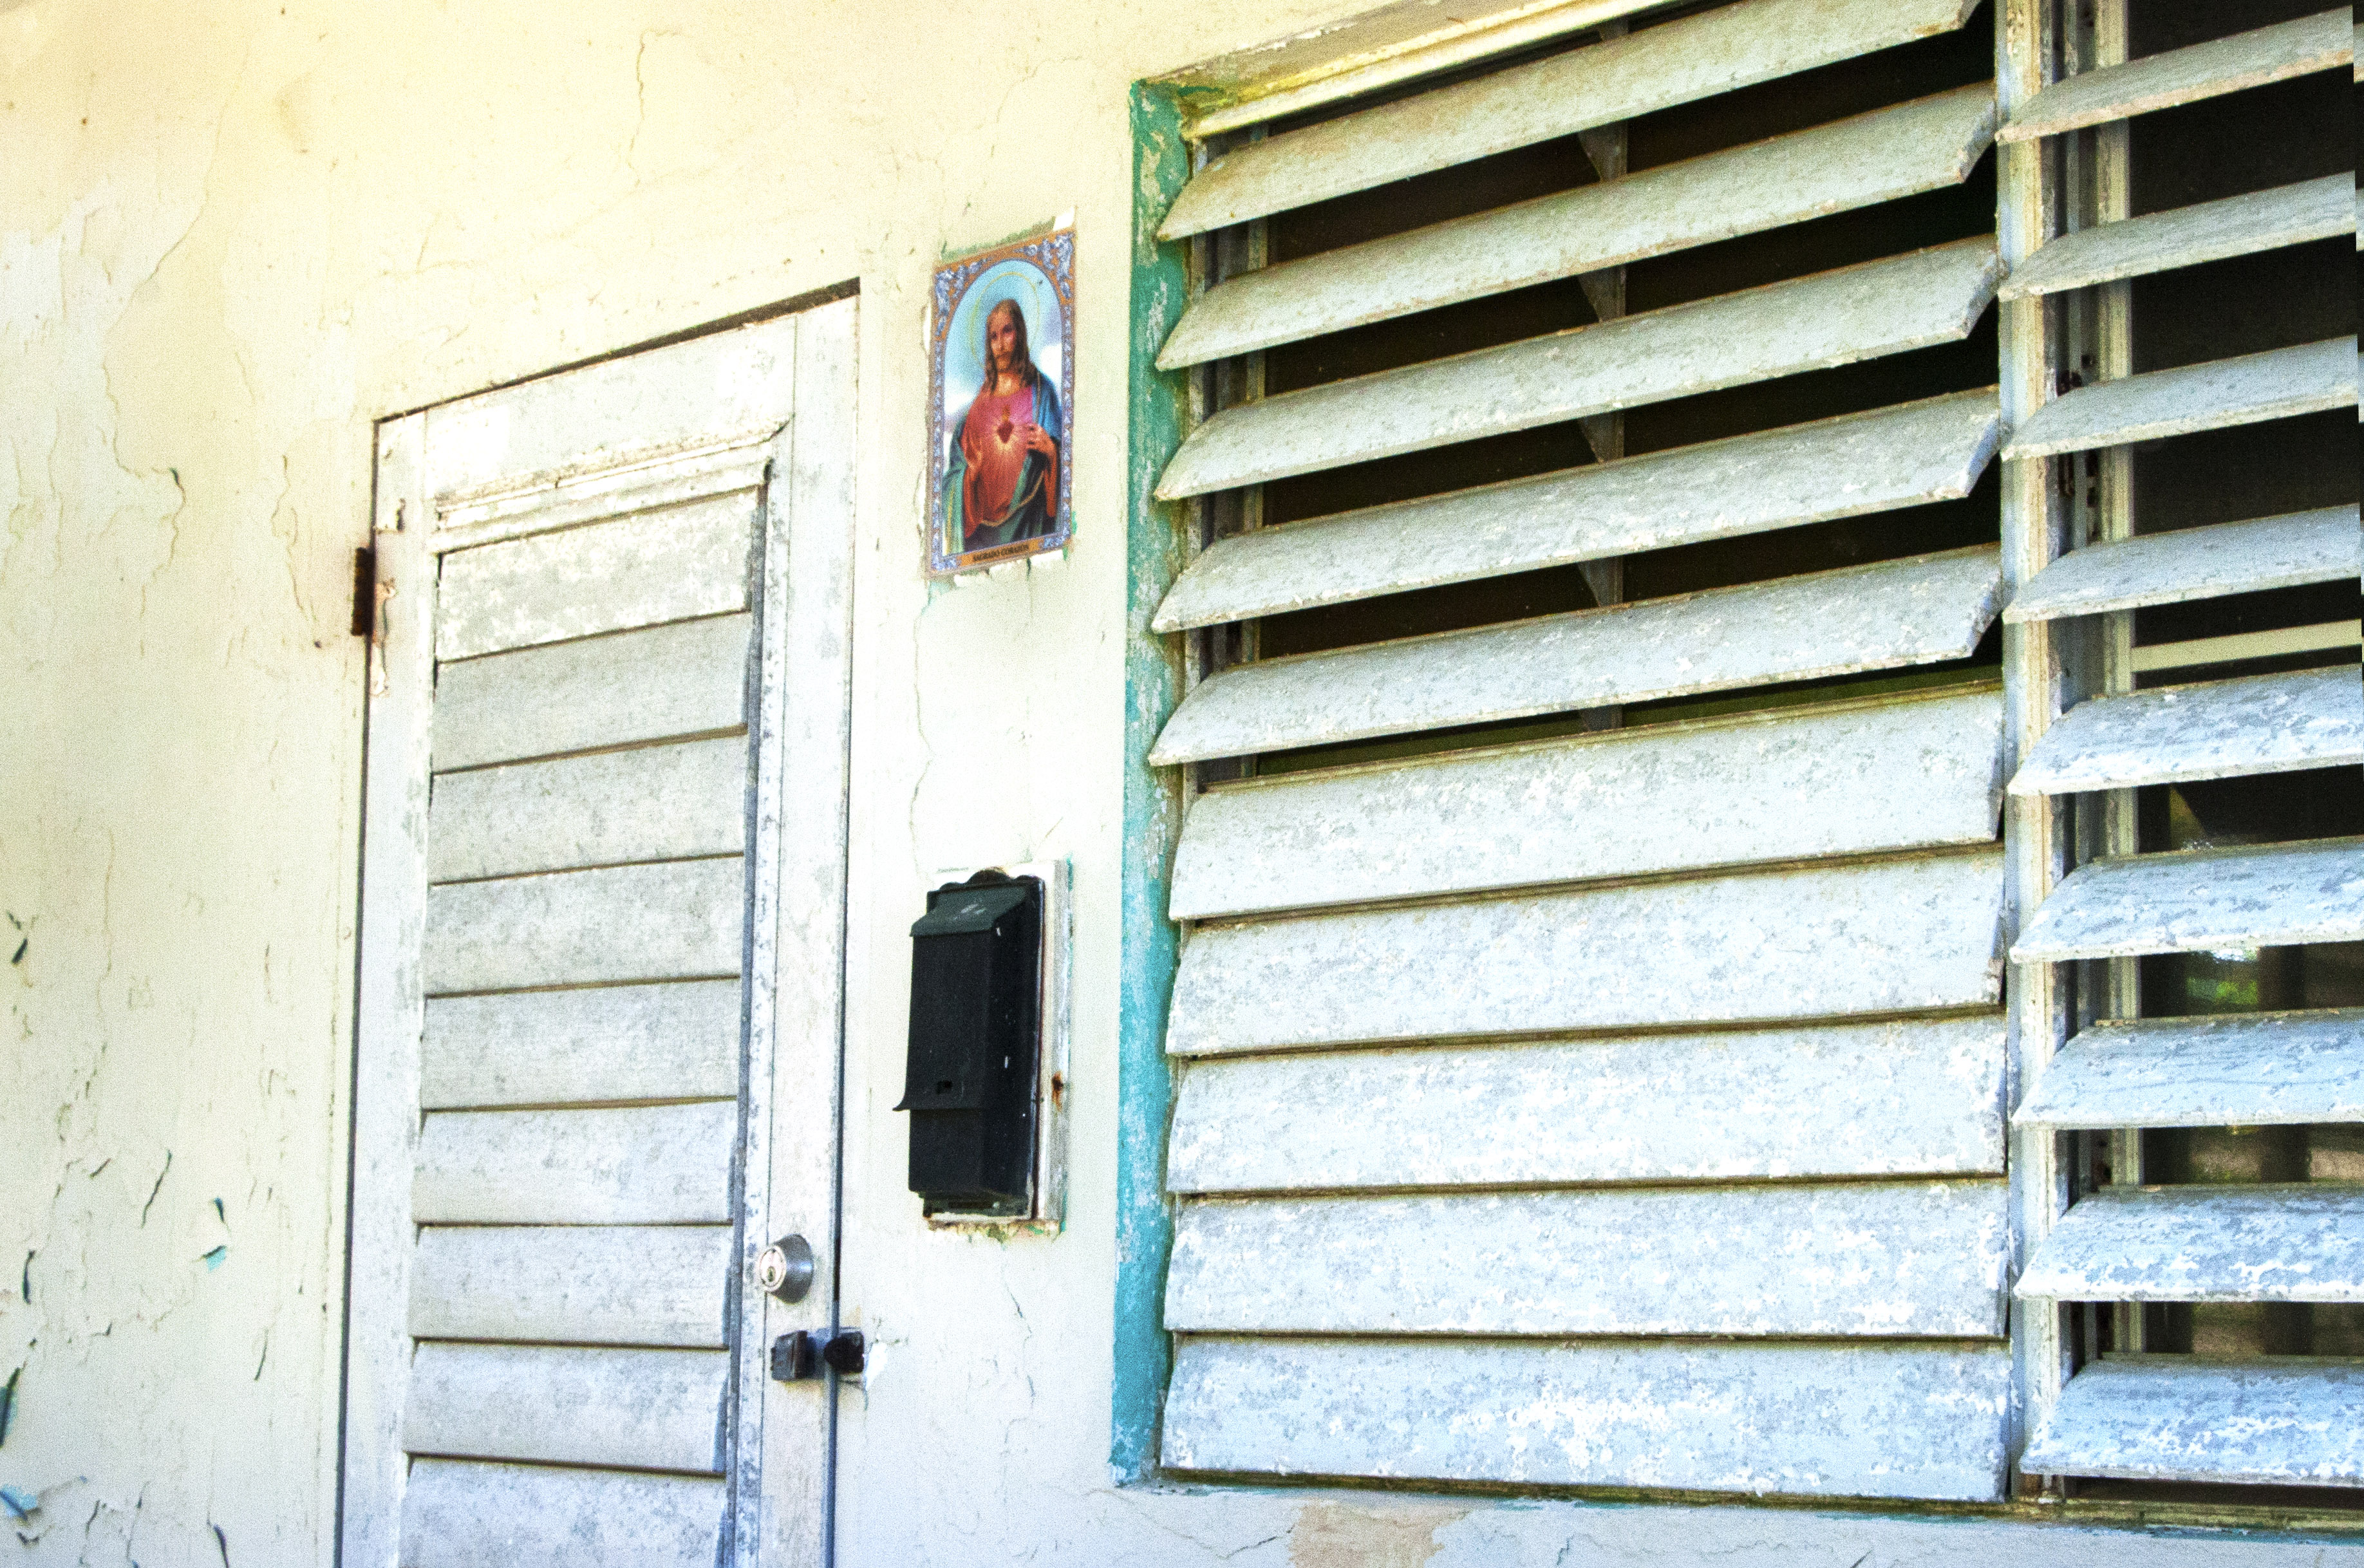 A Little Jesus on a Home in Vieques, Puerto Rico